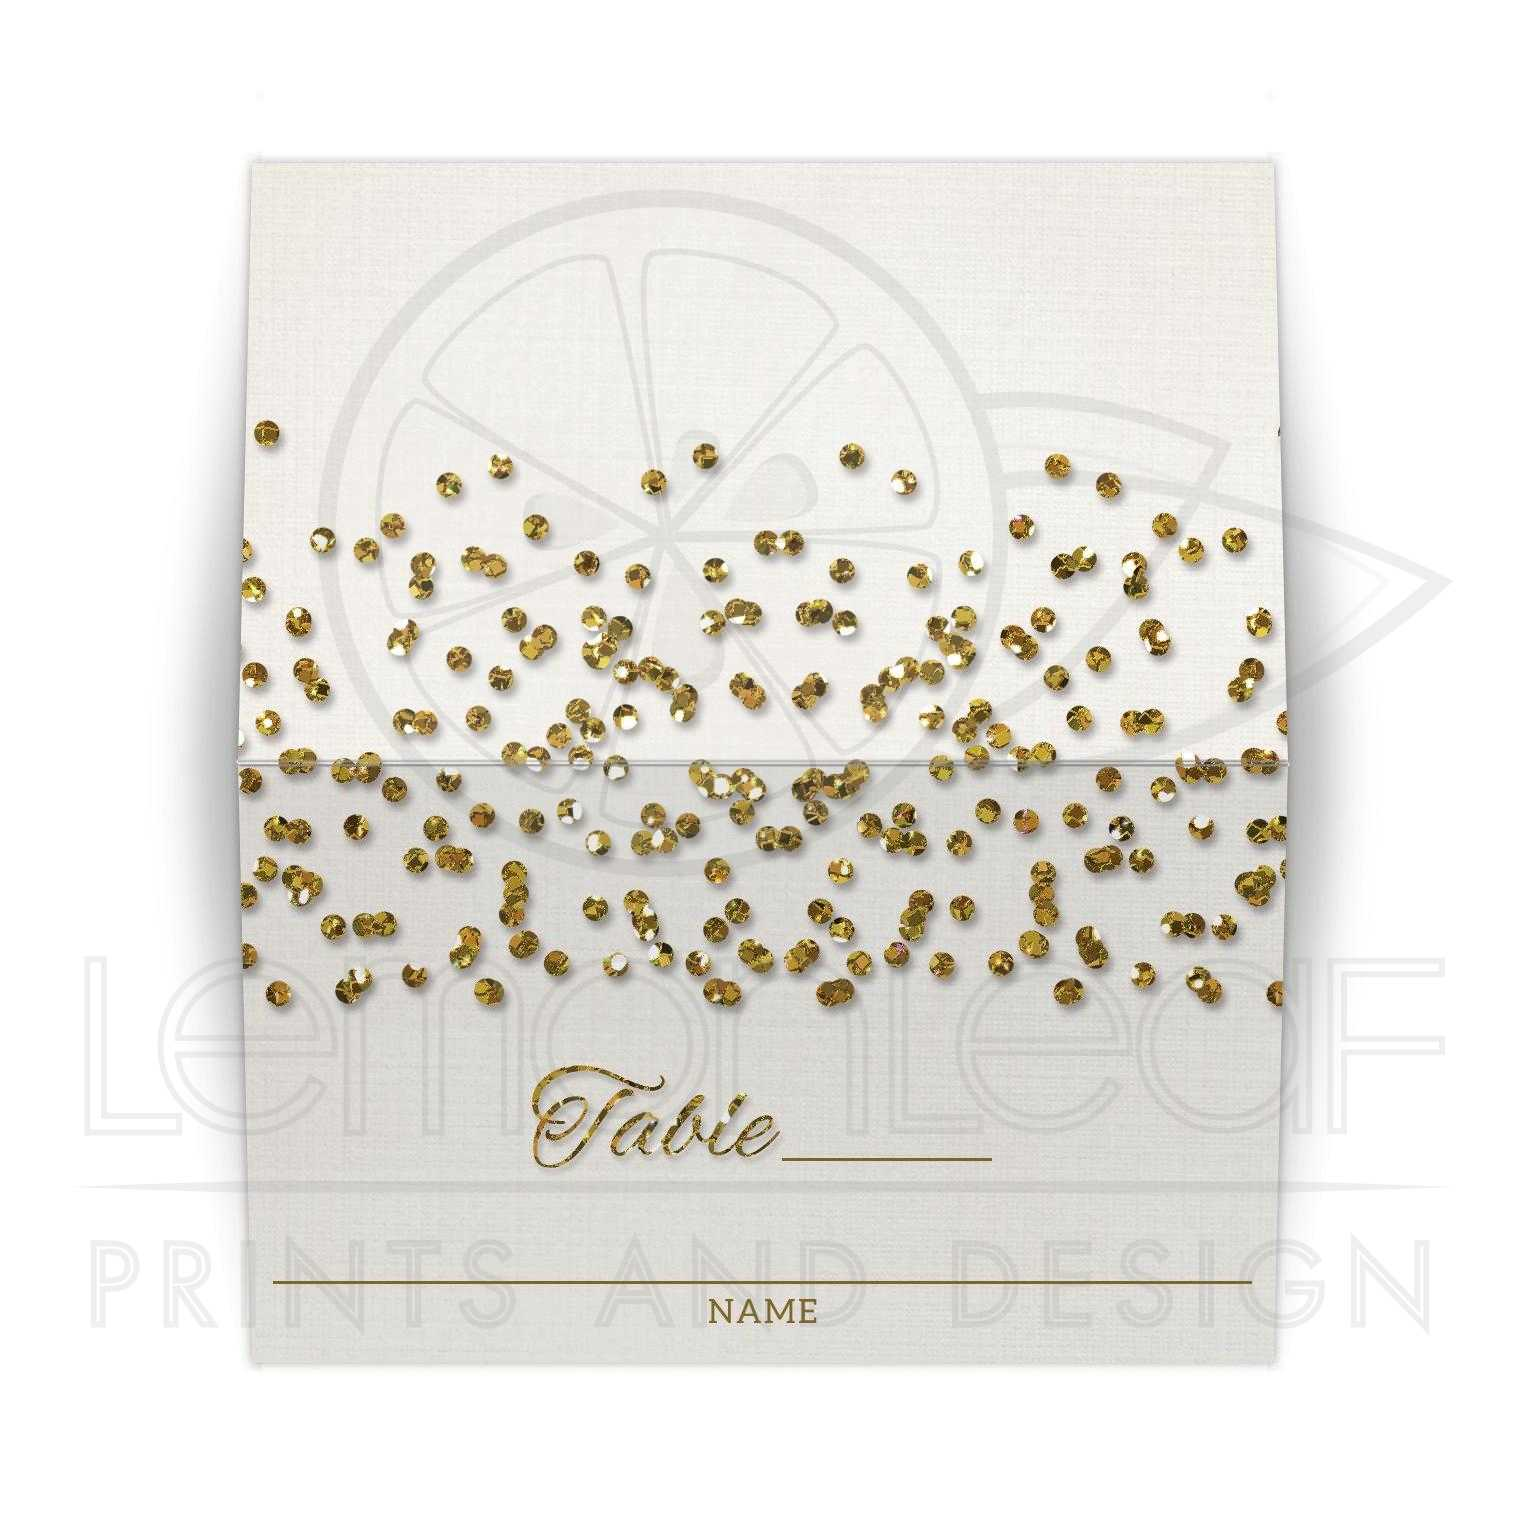 glamorous glitter confetti wedding place cards - Folded Place Cards